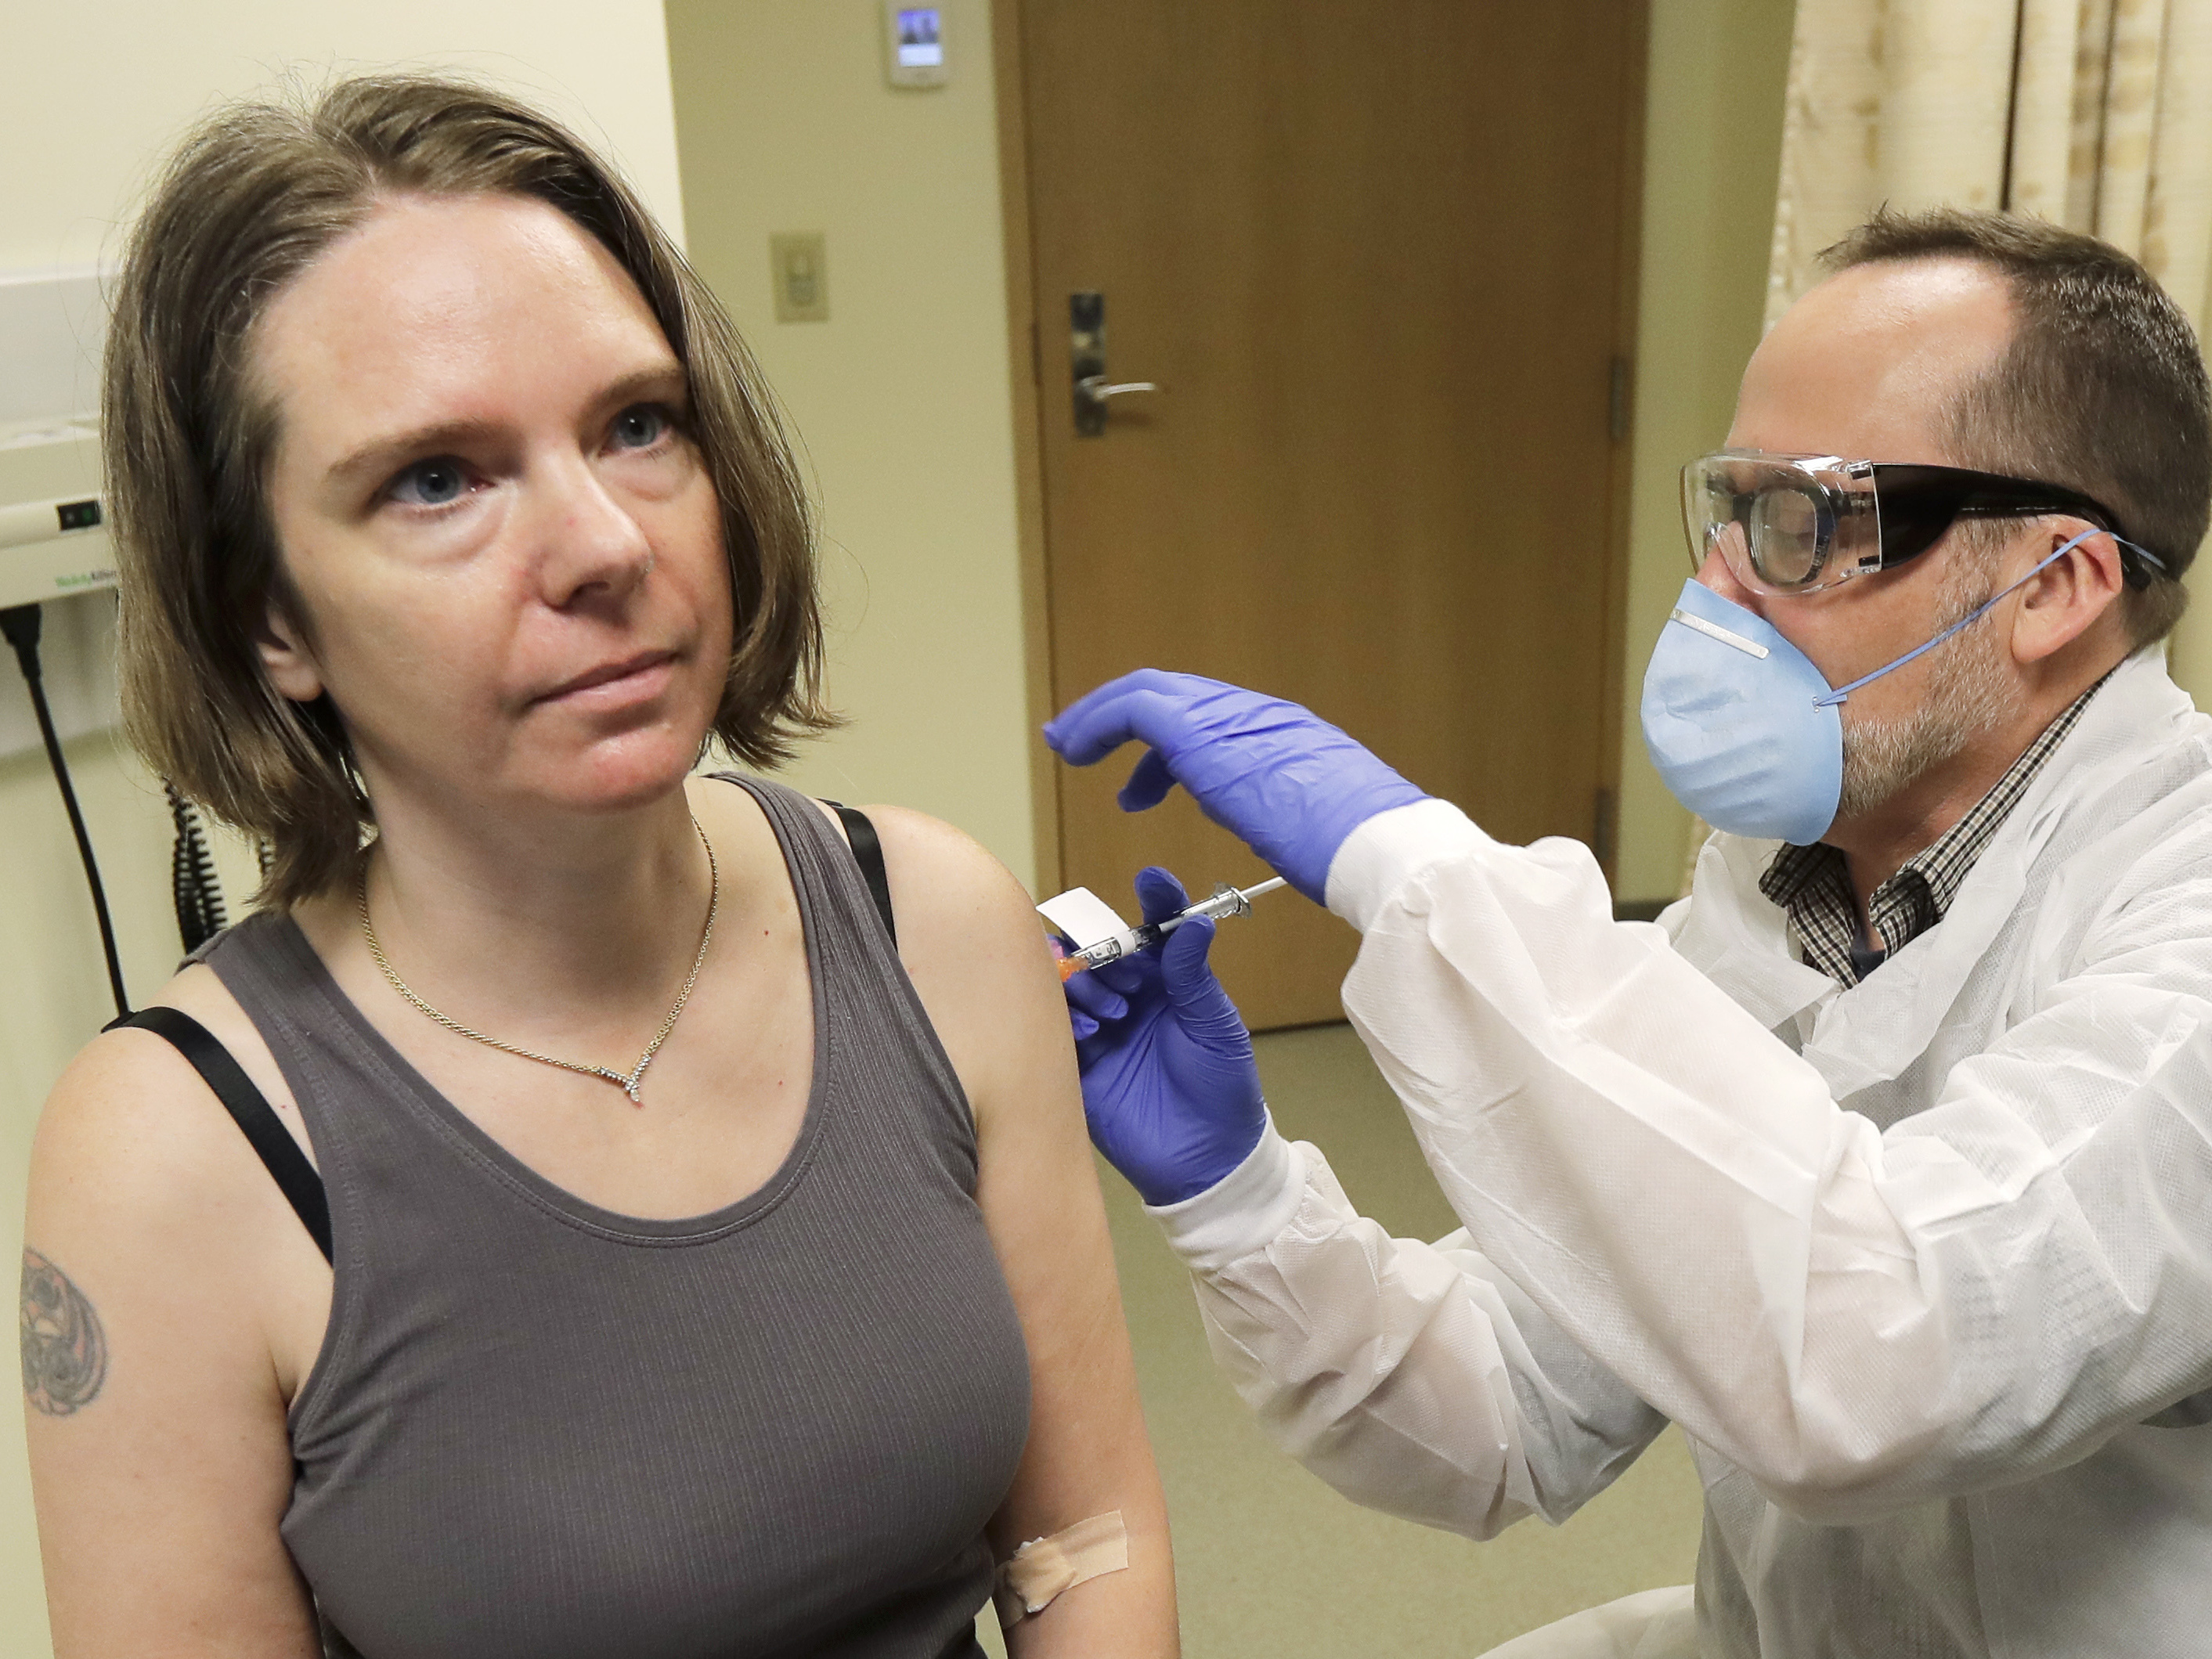 I Wanted To Do Something Says Mother Of 2 Who Is First To Test Coronavirus Vaccine Npr